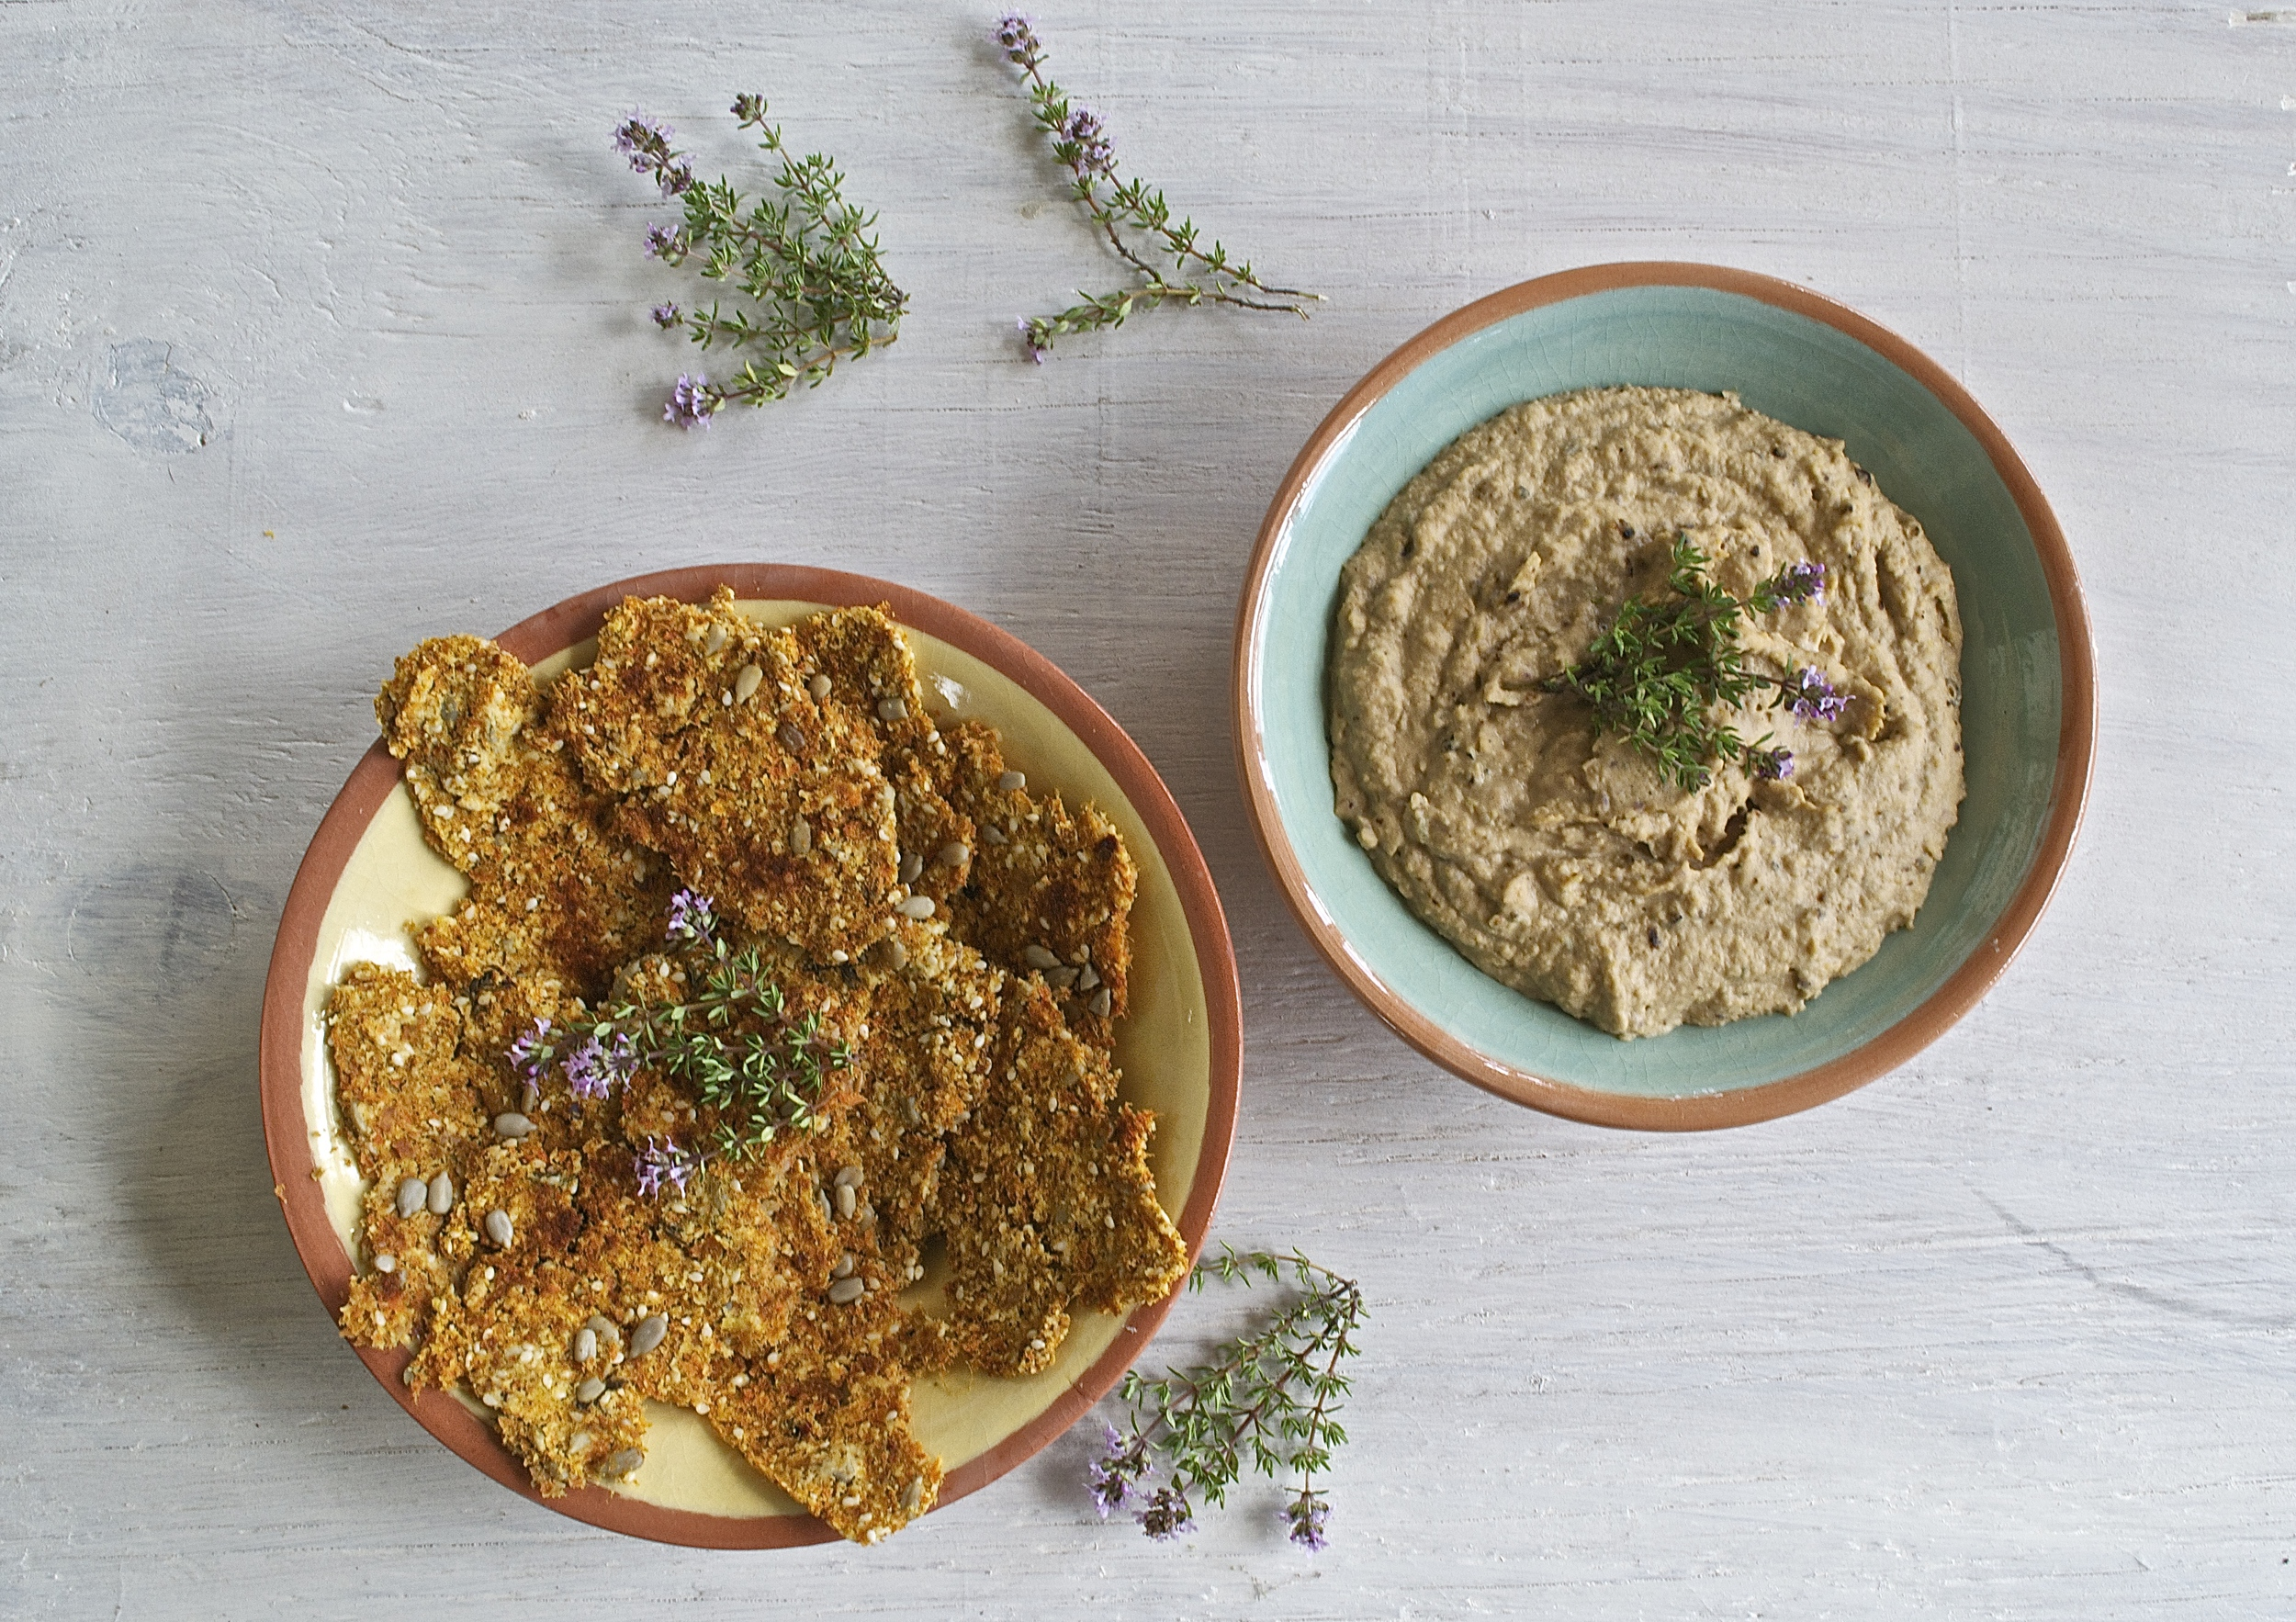 Balsamic Caramelised Onion Hummus with Carrot Thyme Crackers | The Herb Diaries